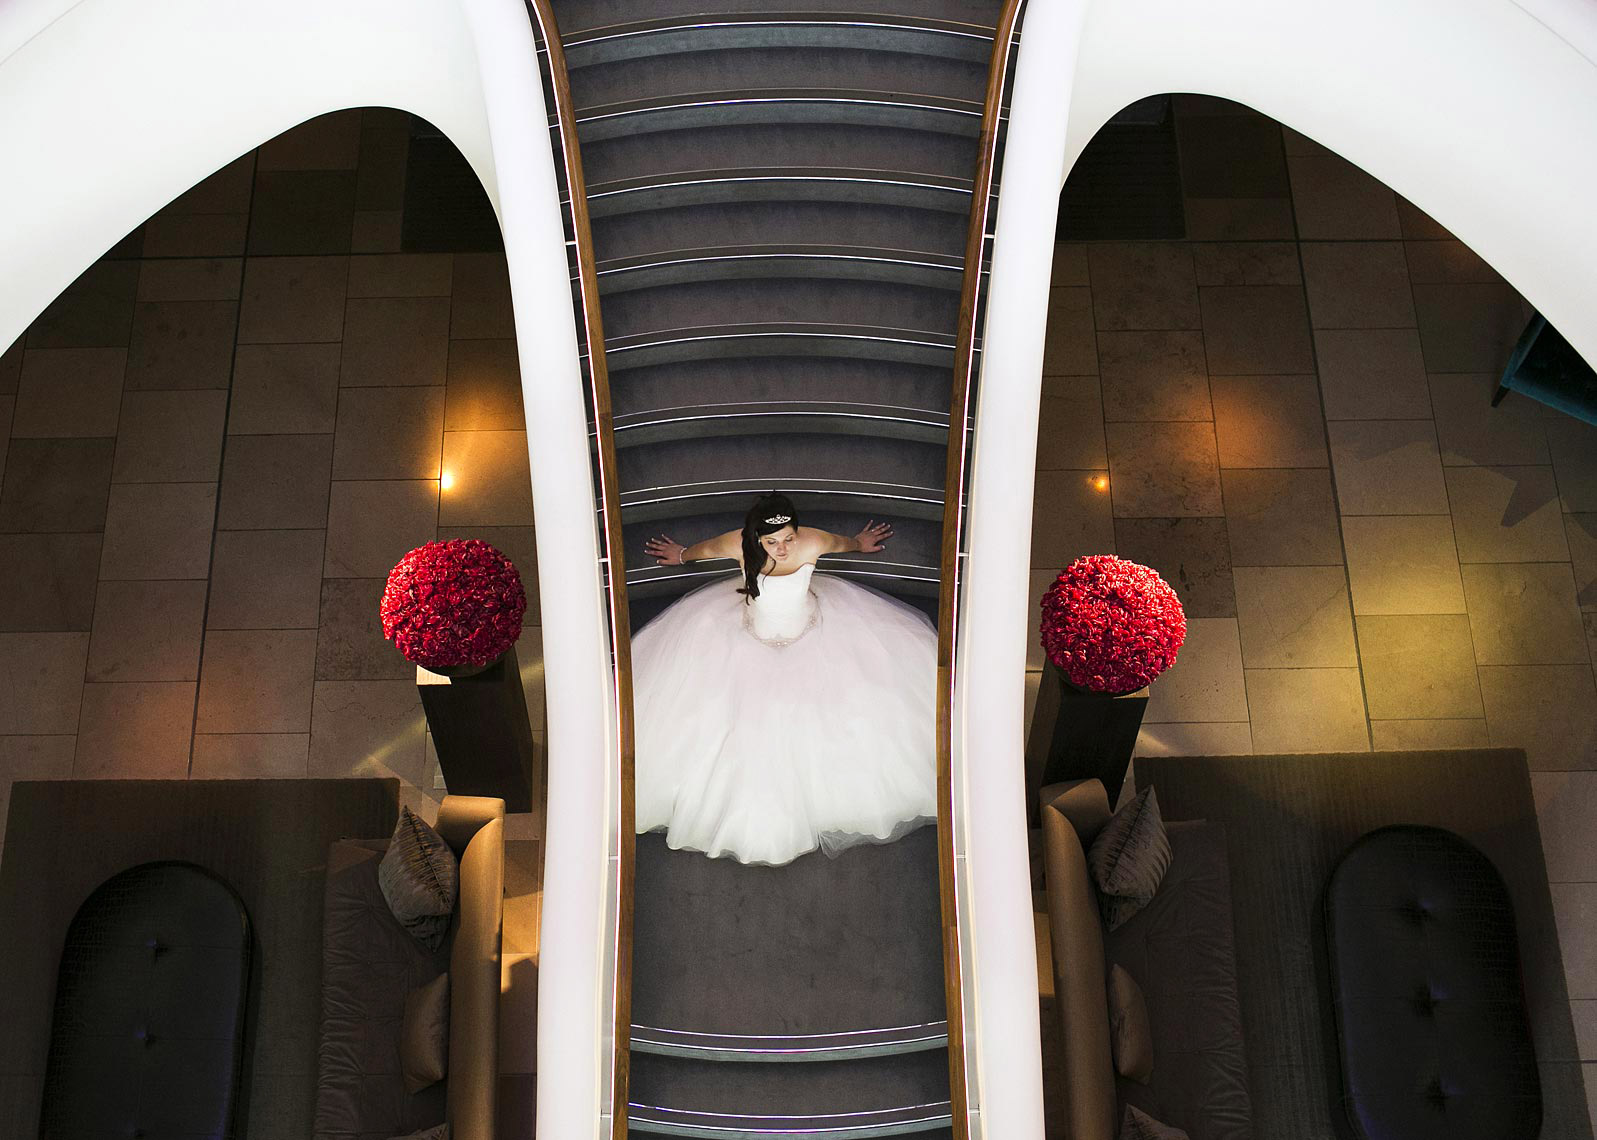 Contemporary-wedding-photography-Aviator-hotel-Hampshire-DUP.jpg